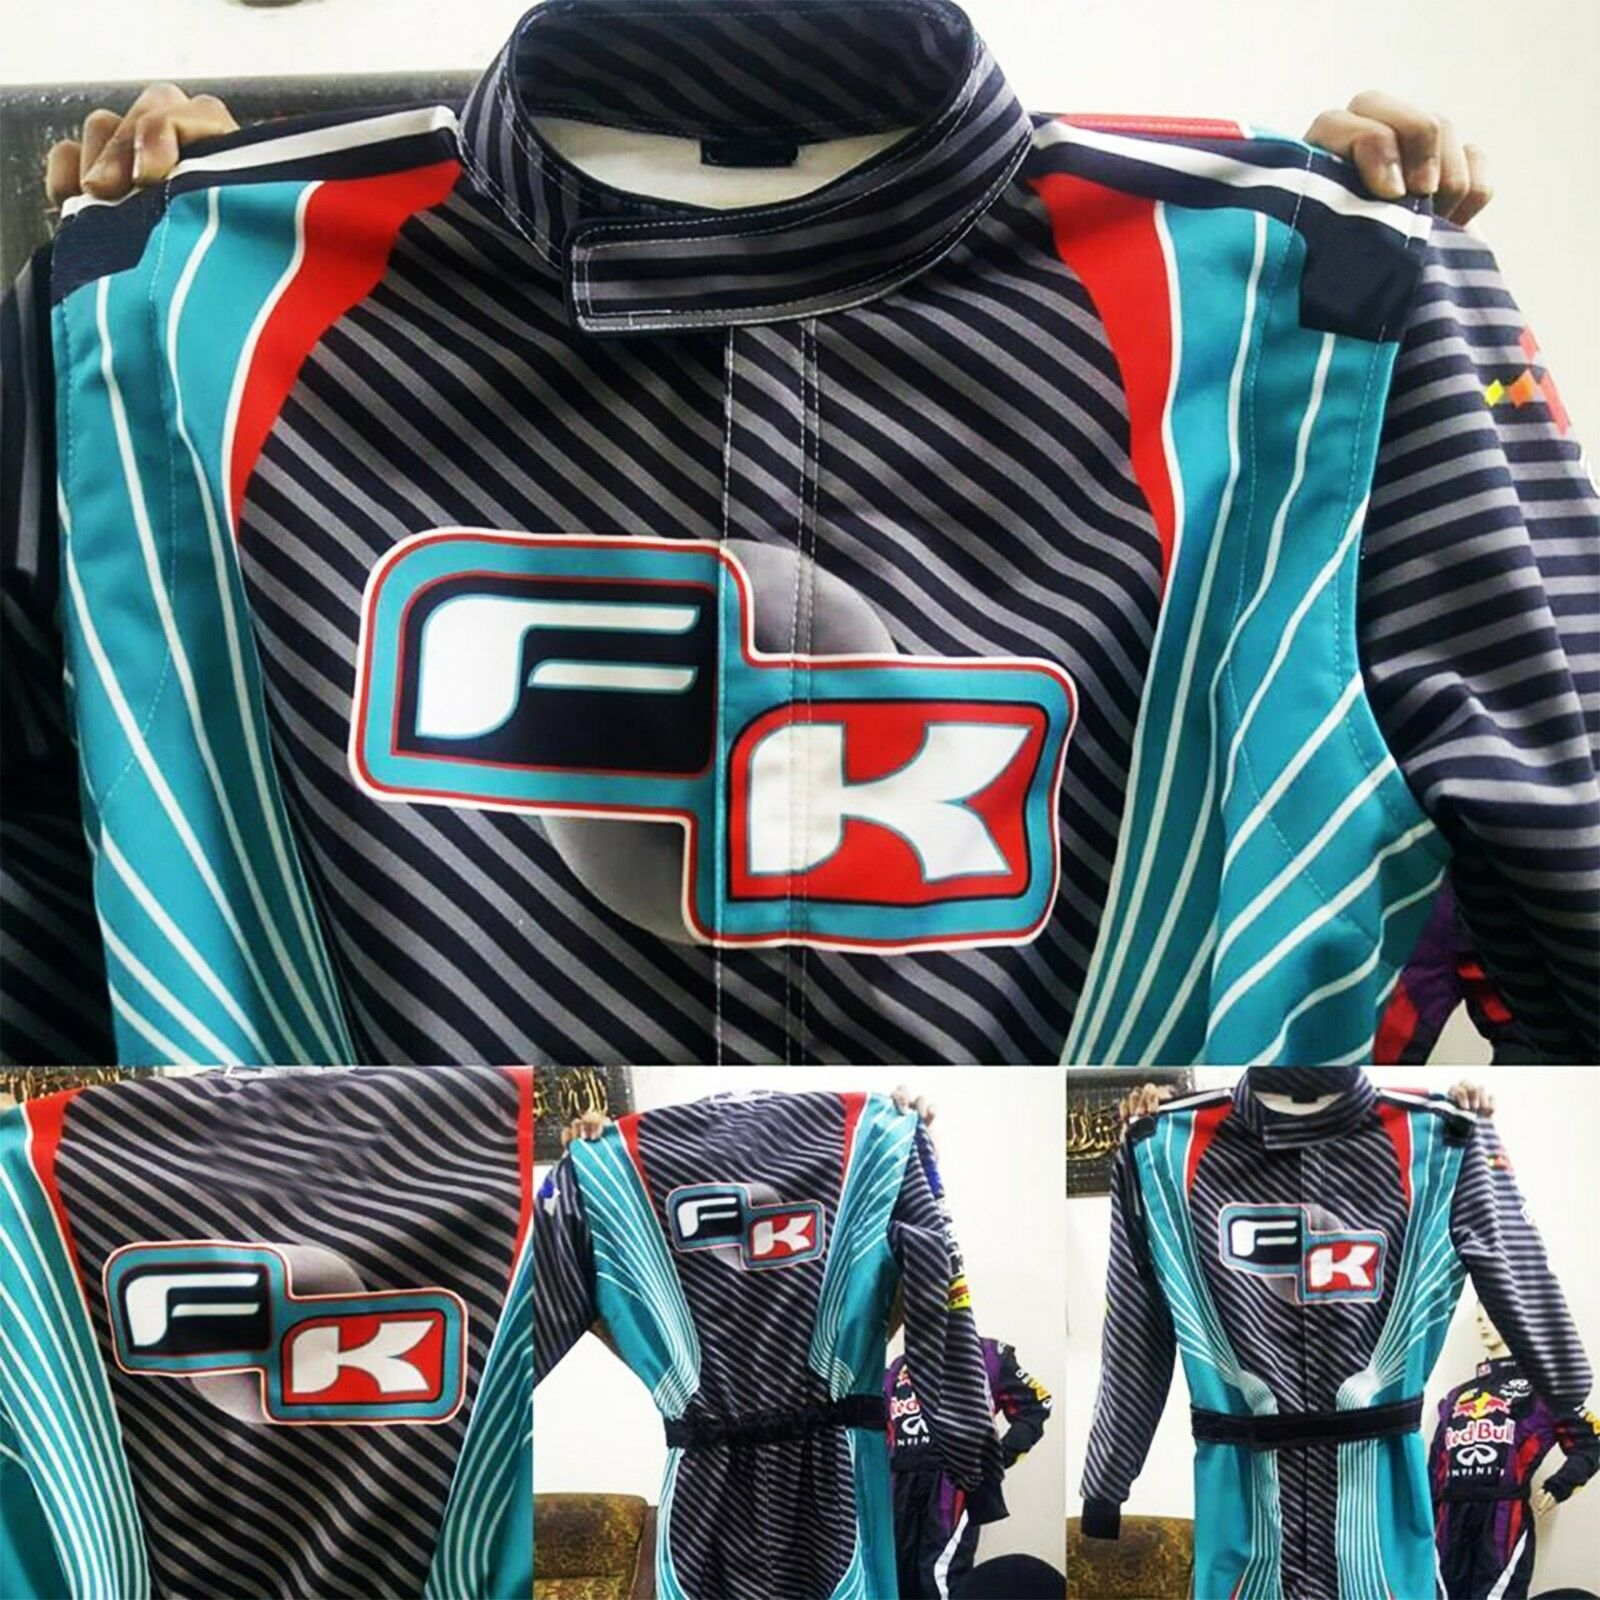 FK Go Kart Race Suit-Level-2- Karting Suit with-free-gift Balaclava